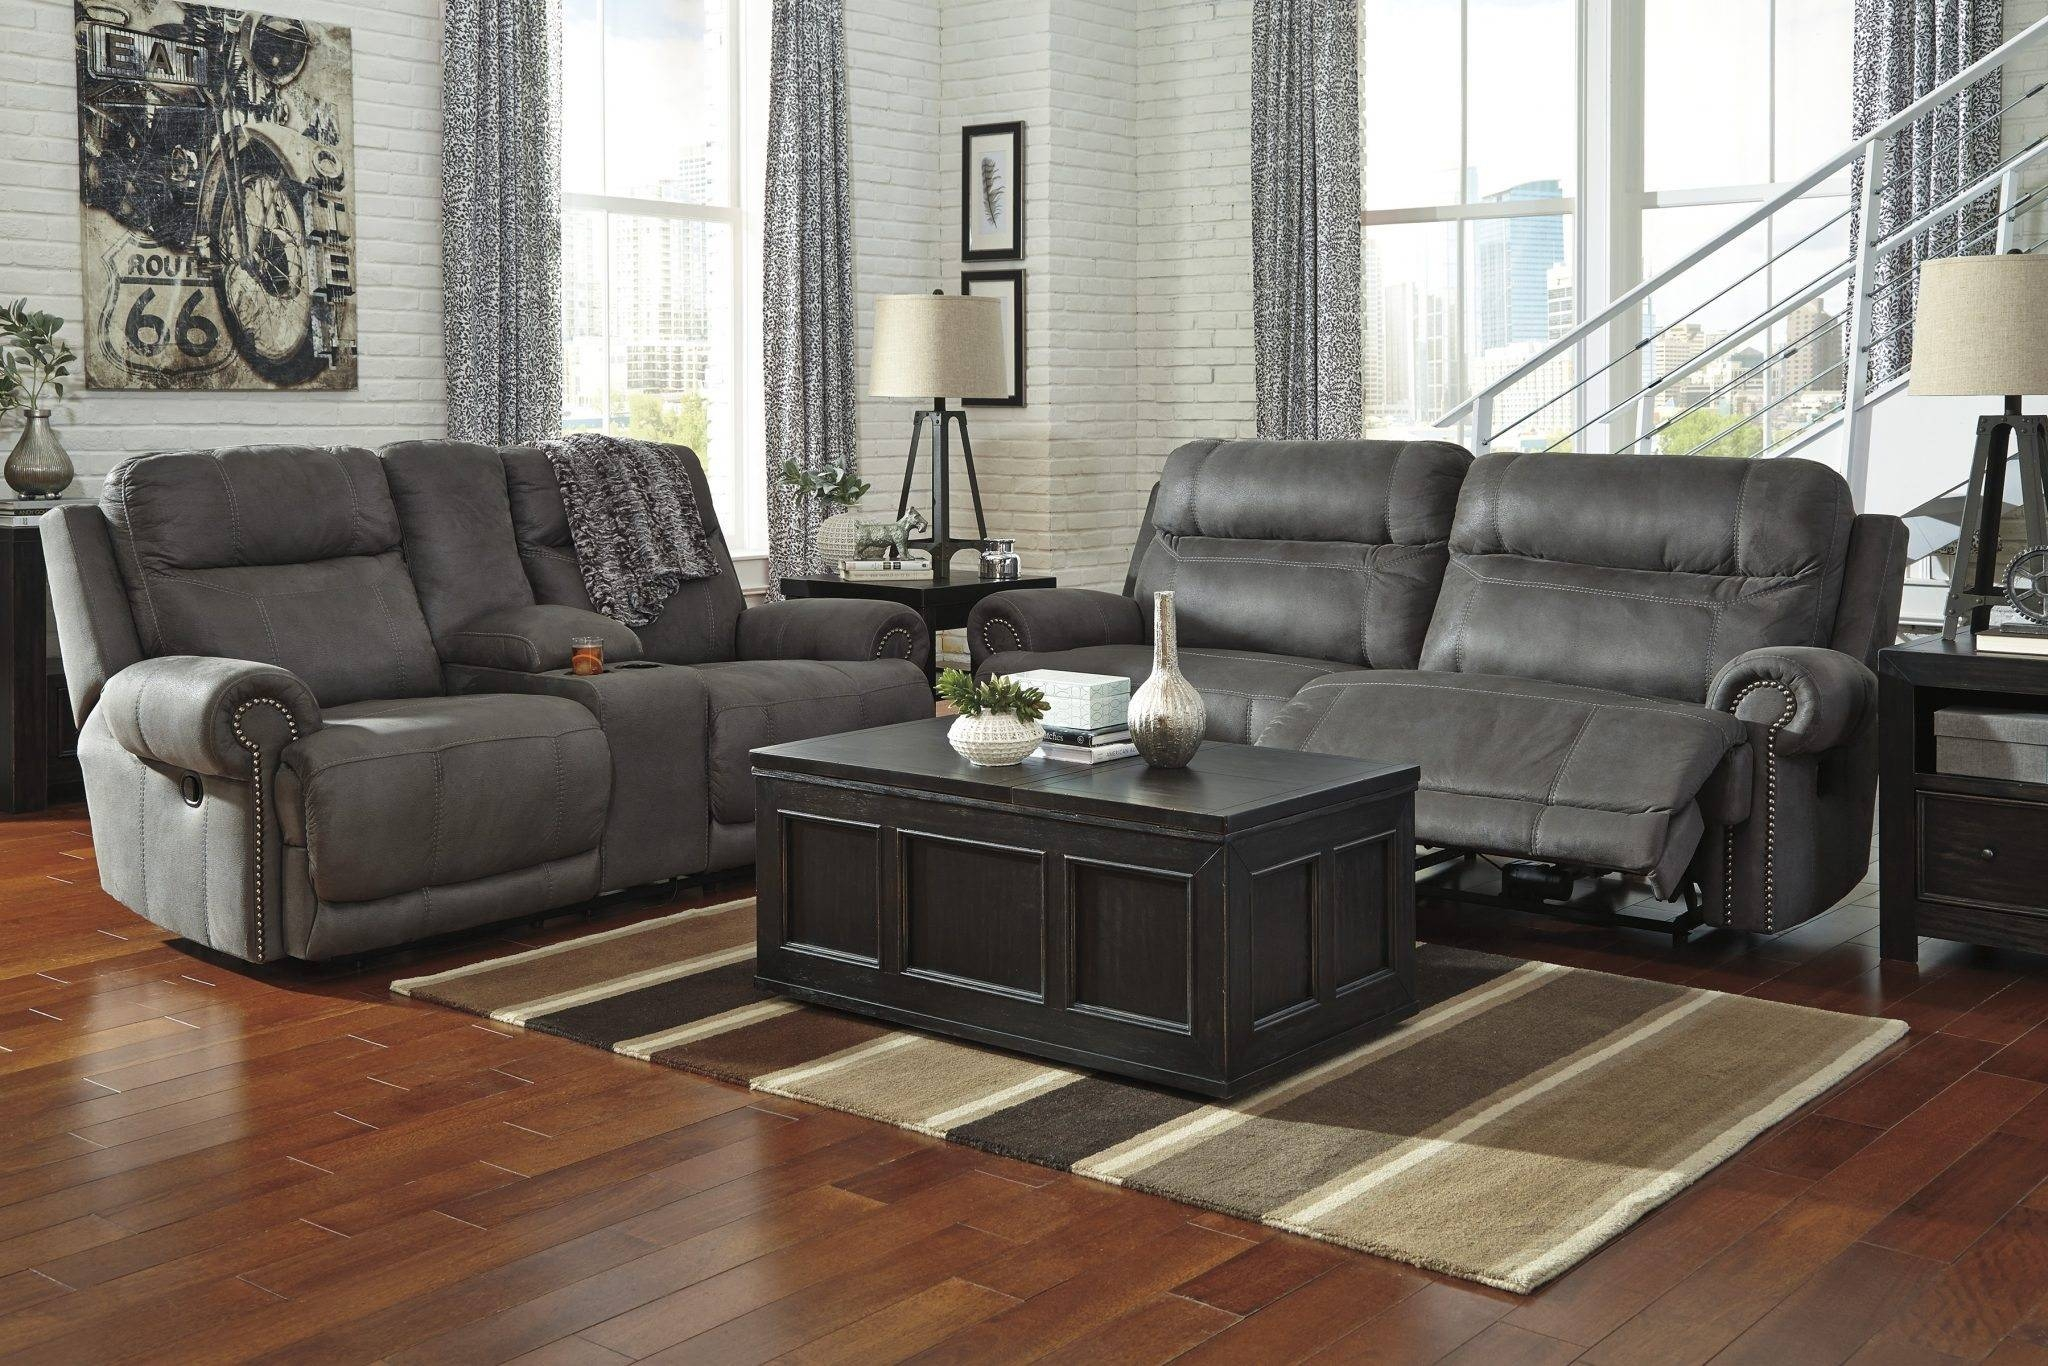 Best Furniture Mentor Oh: Furniture Store - Ashley Furniture regarding Ashley Furniture Gray Sofa (Image 16 of 30)